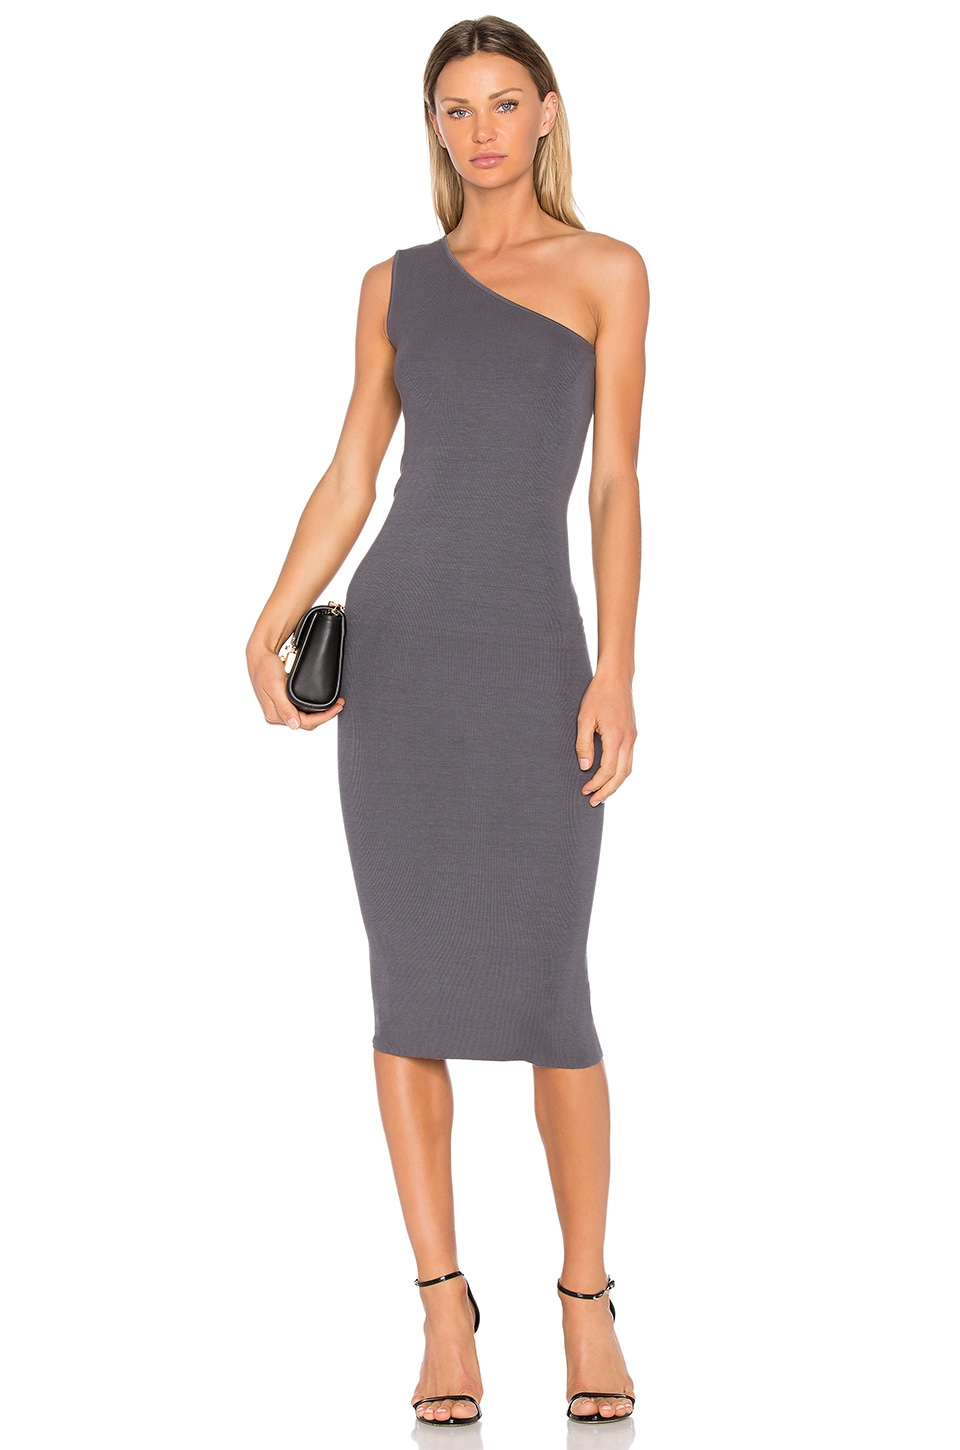 Enza Costa Rib One Shoulder Midi Dress in Castlerock